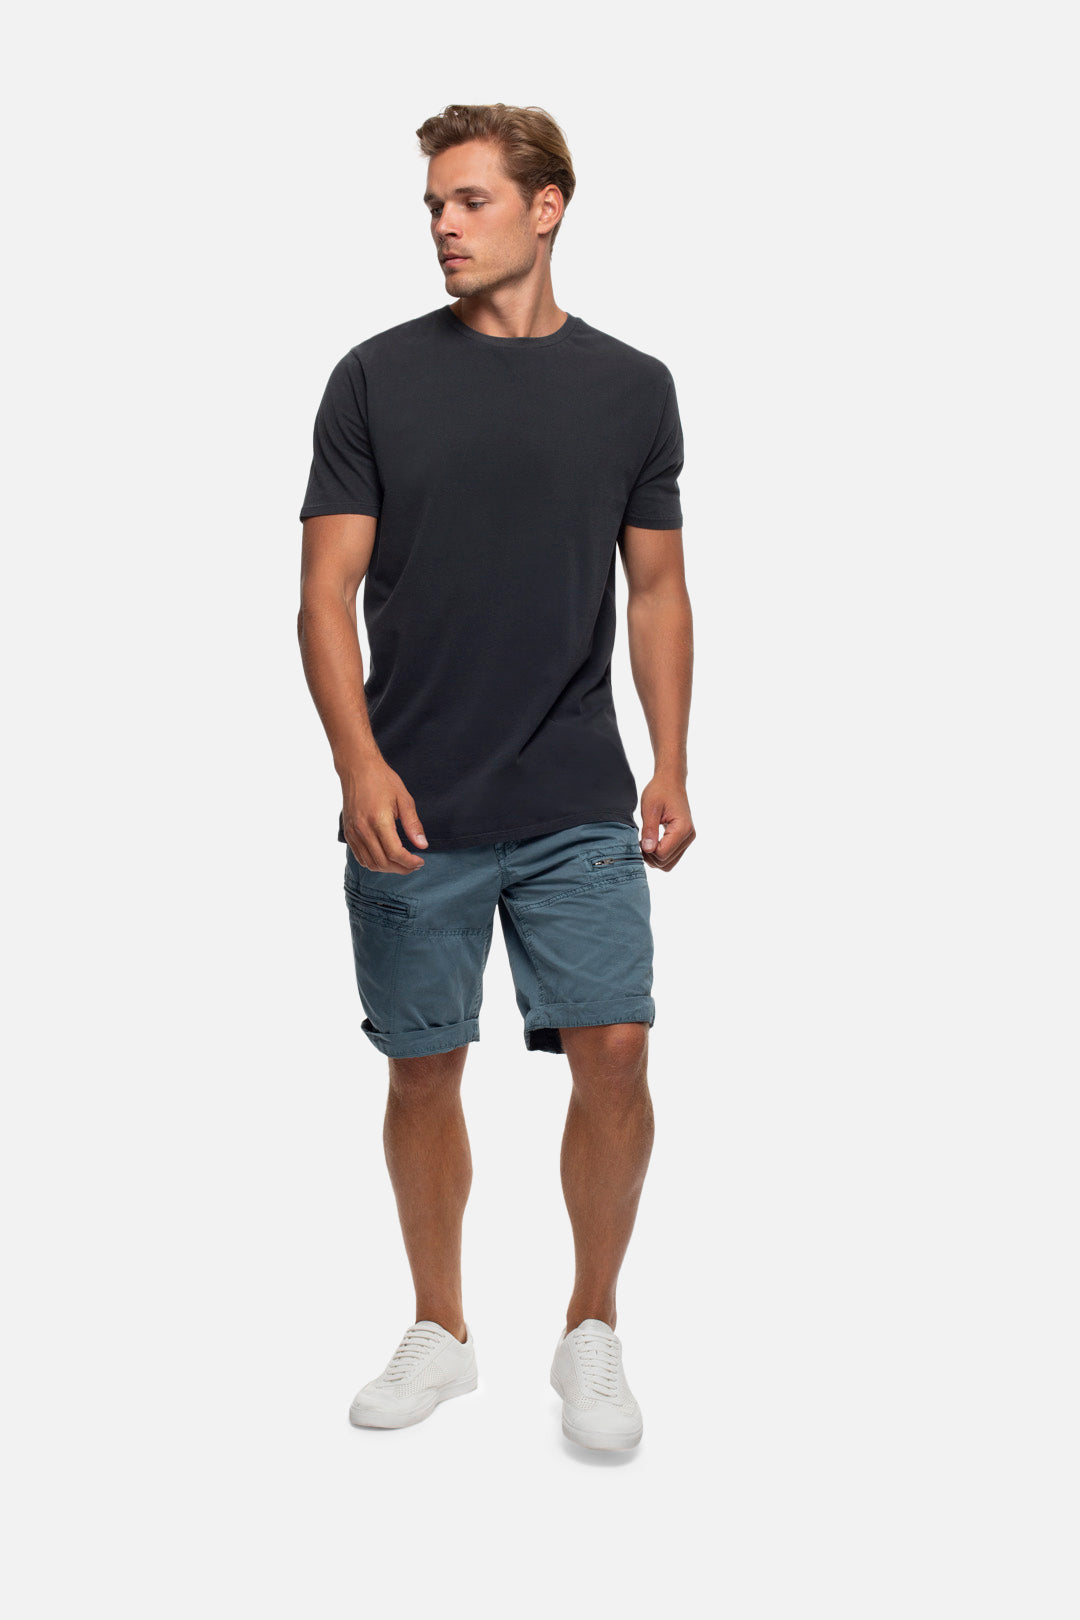 The Basic Classic Tee - Black